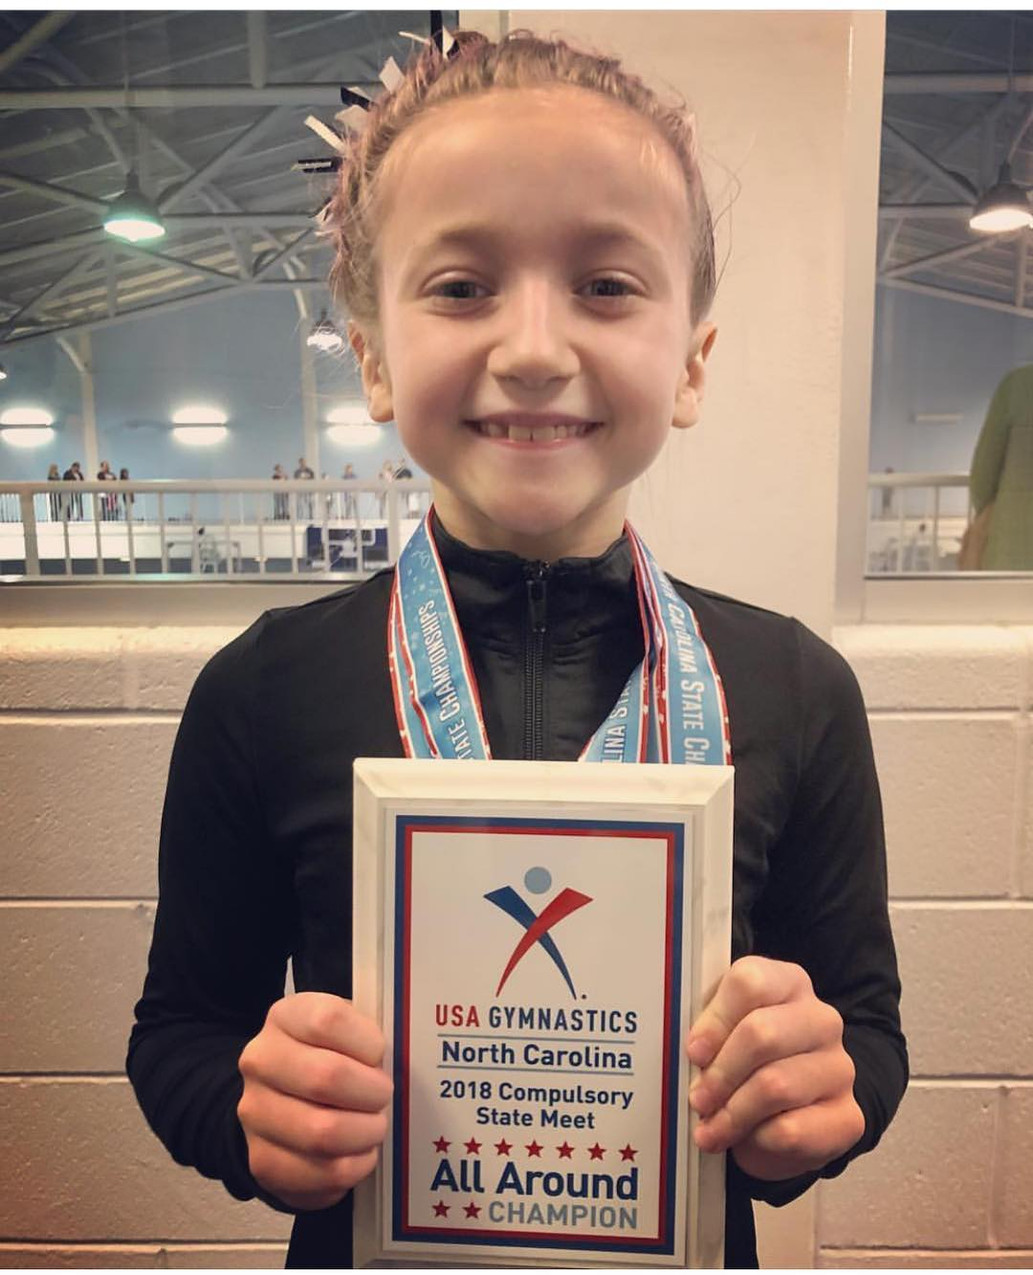 FIF Level 2 Finley NC State Champion 1st